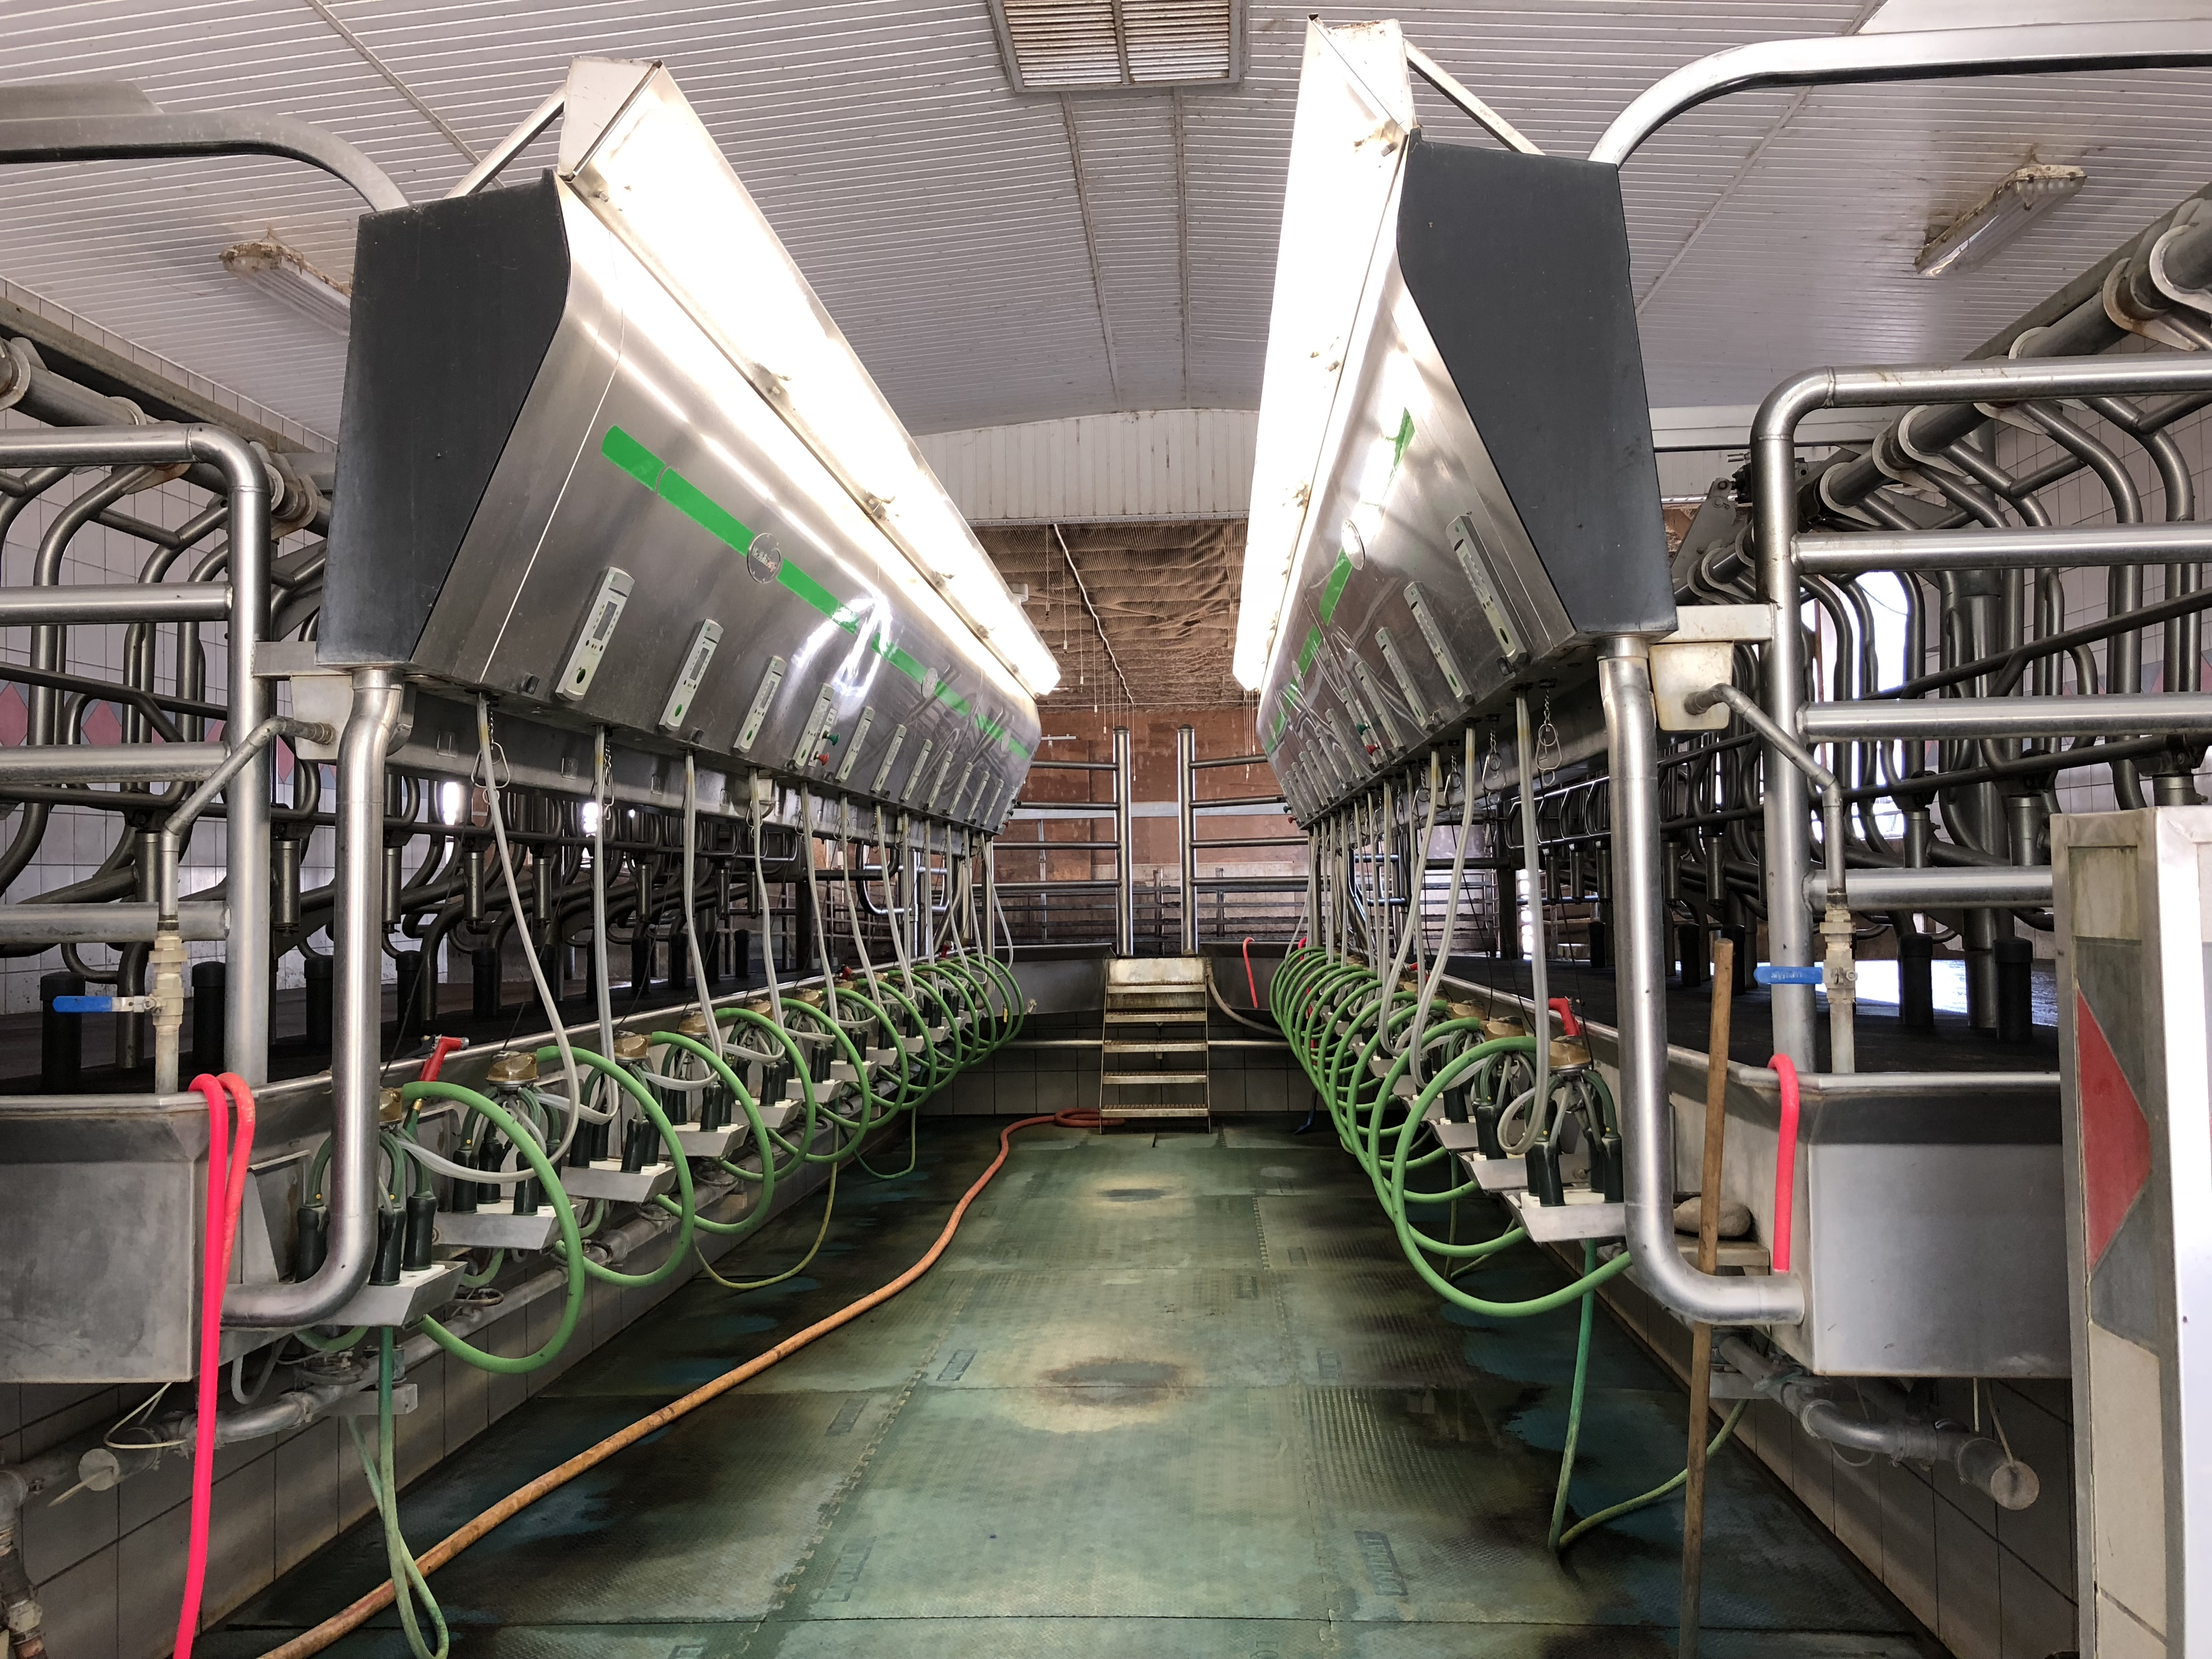 Colour photograph of a stainless steel milking parlour.